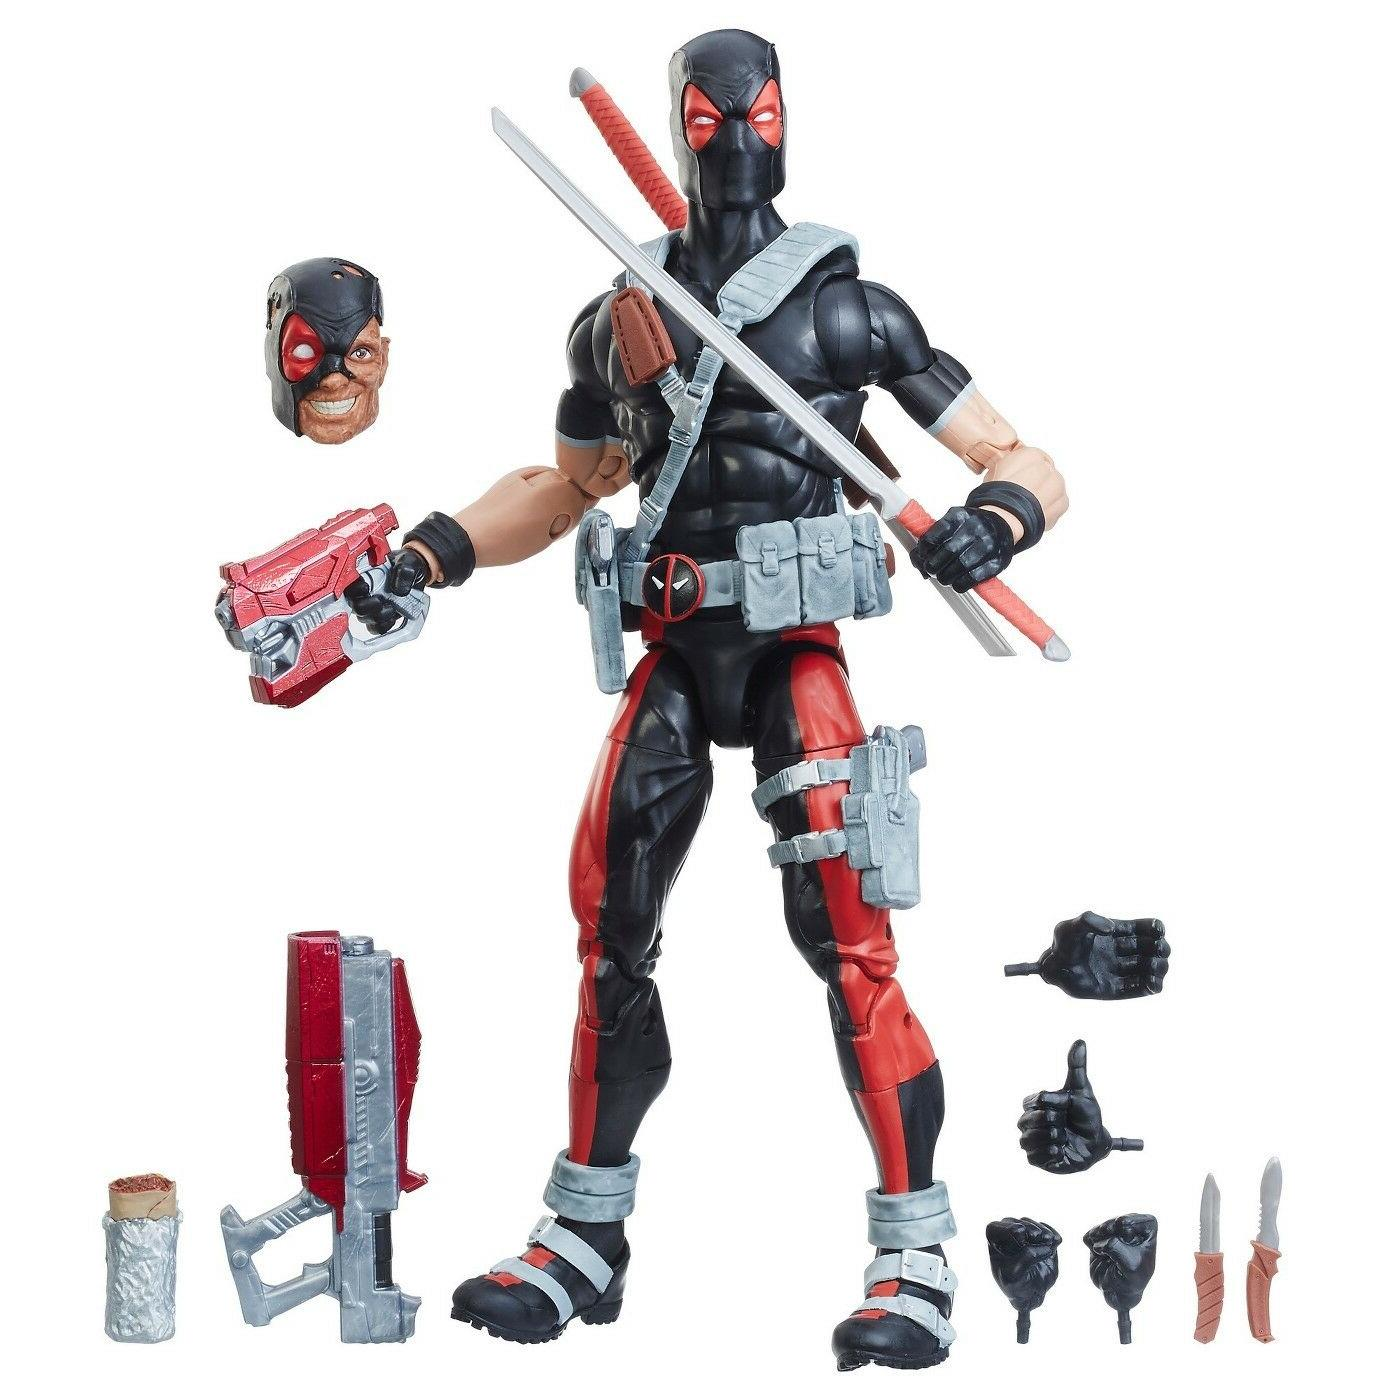 MARVEL SERIES DEADPOOL AGENT WEAPON 12 Action Figure Brand New